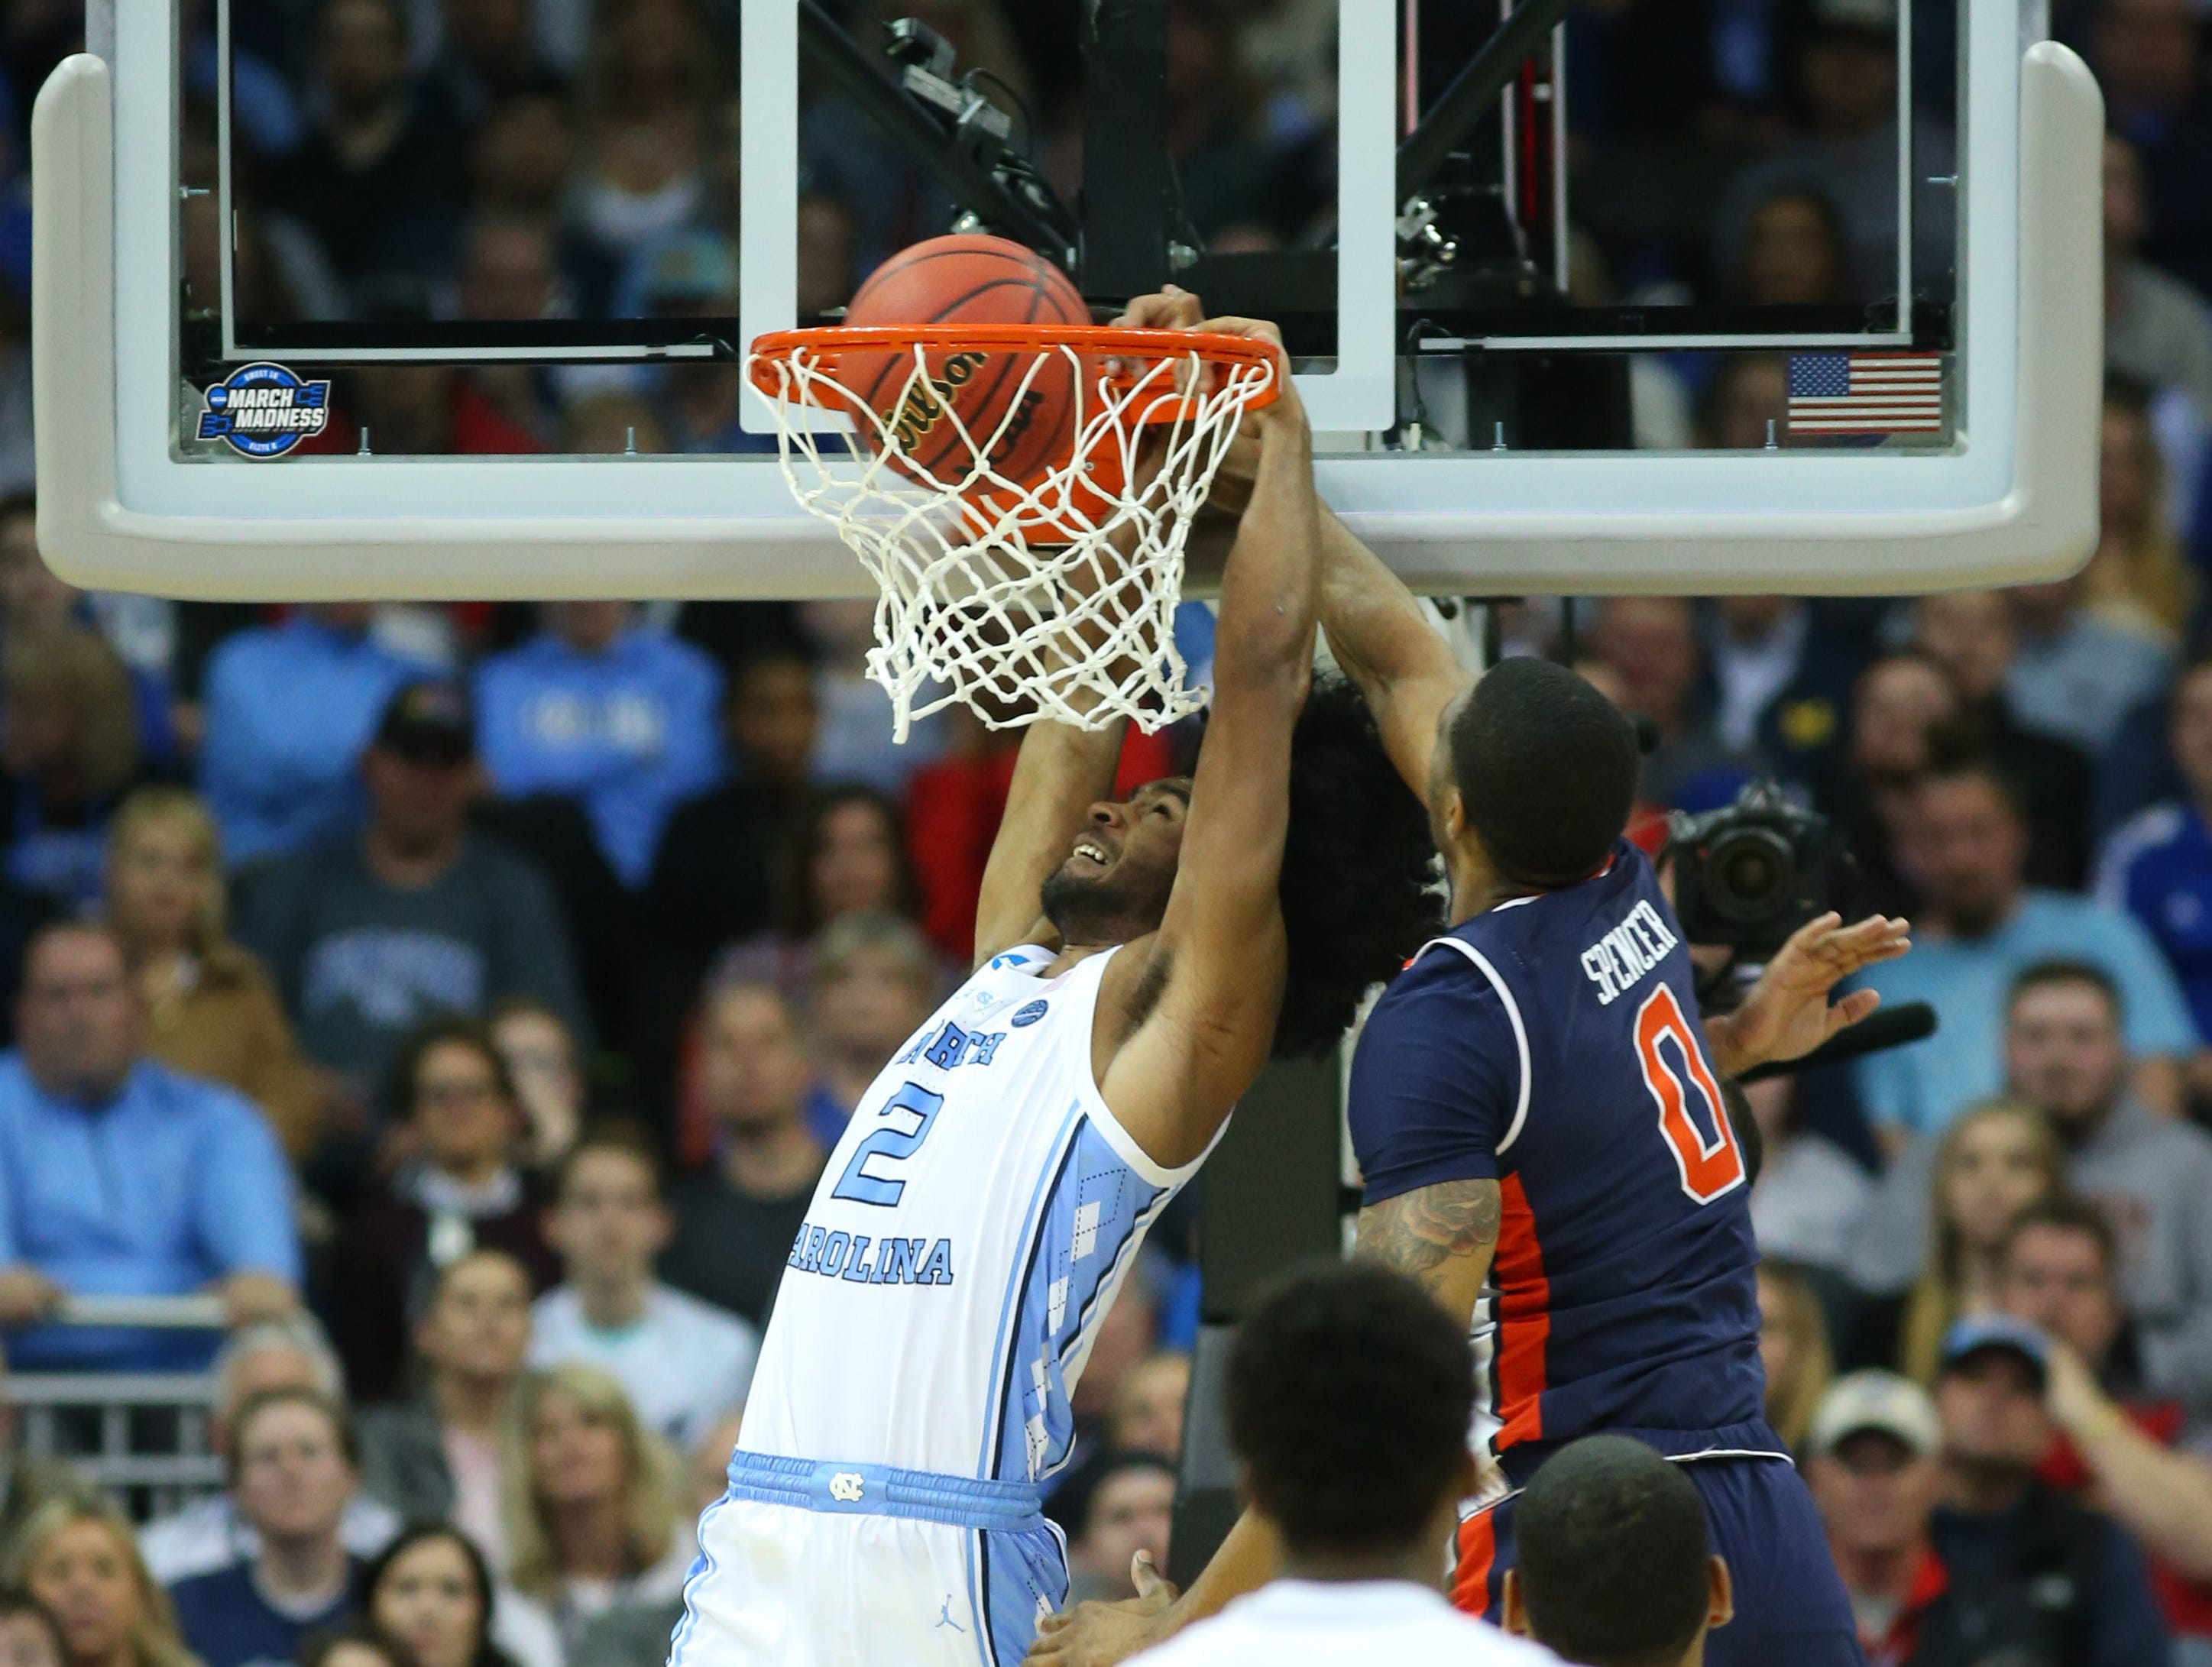 Mar 29, 2019; Kansas City, MO, United States; North Carolina Tar Heels guard Coby White (2) dunks over Auburn Tigers forward Horace Spencer (0) during the second half in the semifinals of the midwest regional of the 2019 NCAA Tournament at Sprint Center. Mandatory Credit: Jay Biggerstaff-USA TODAY Sports